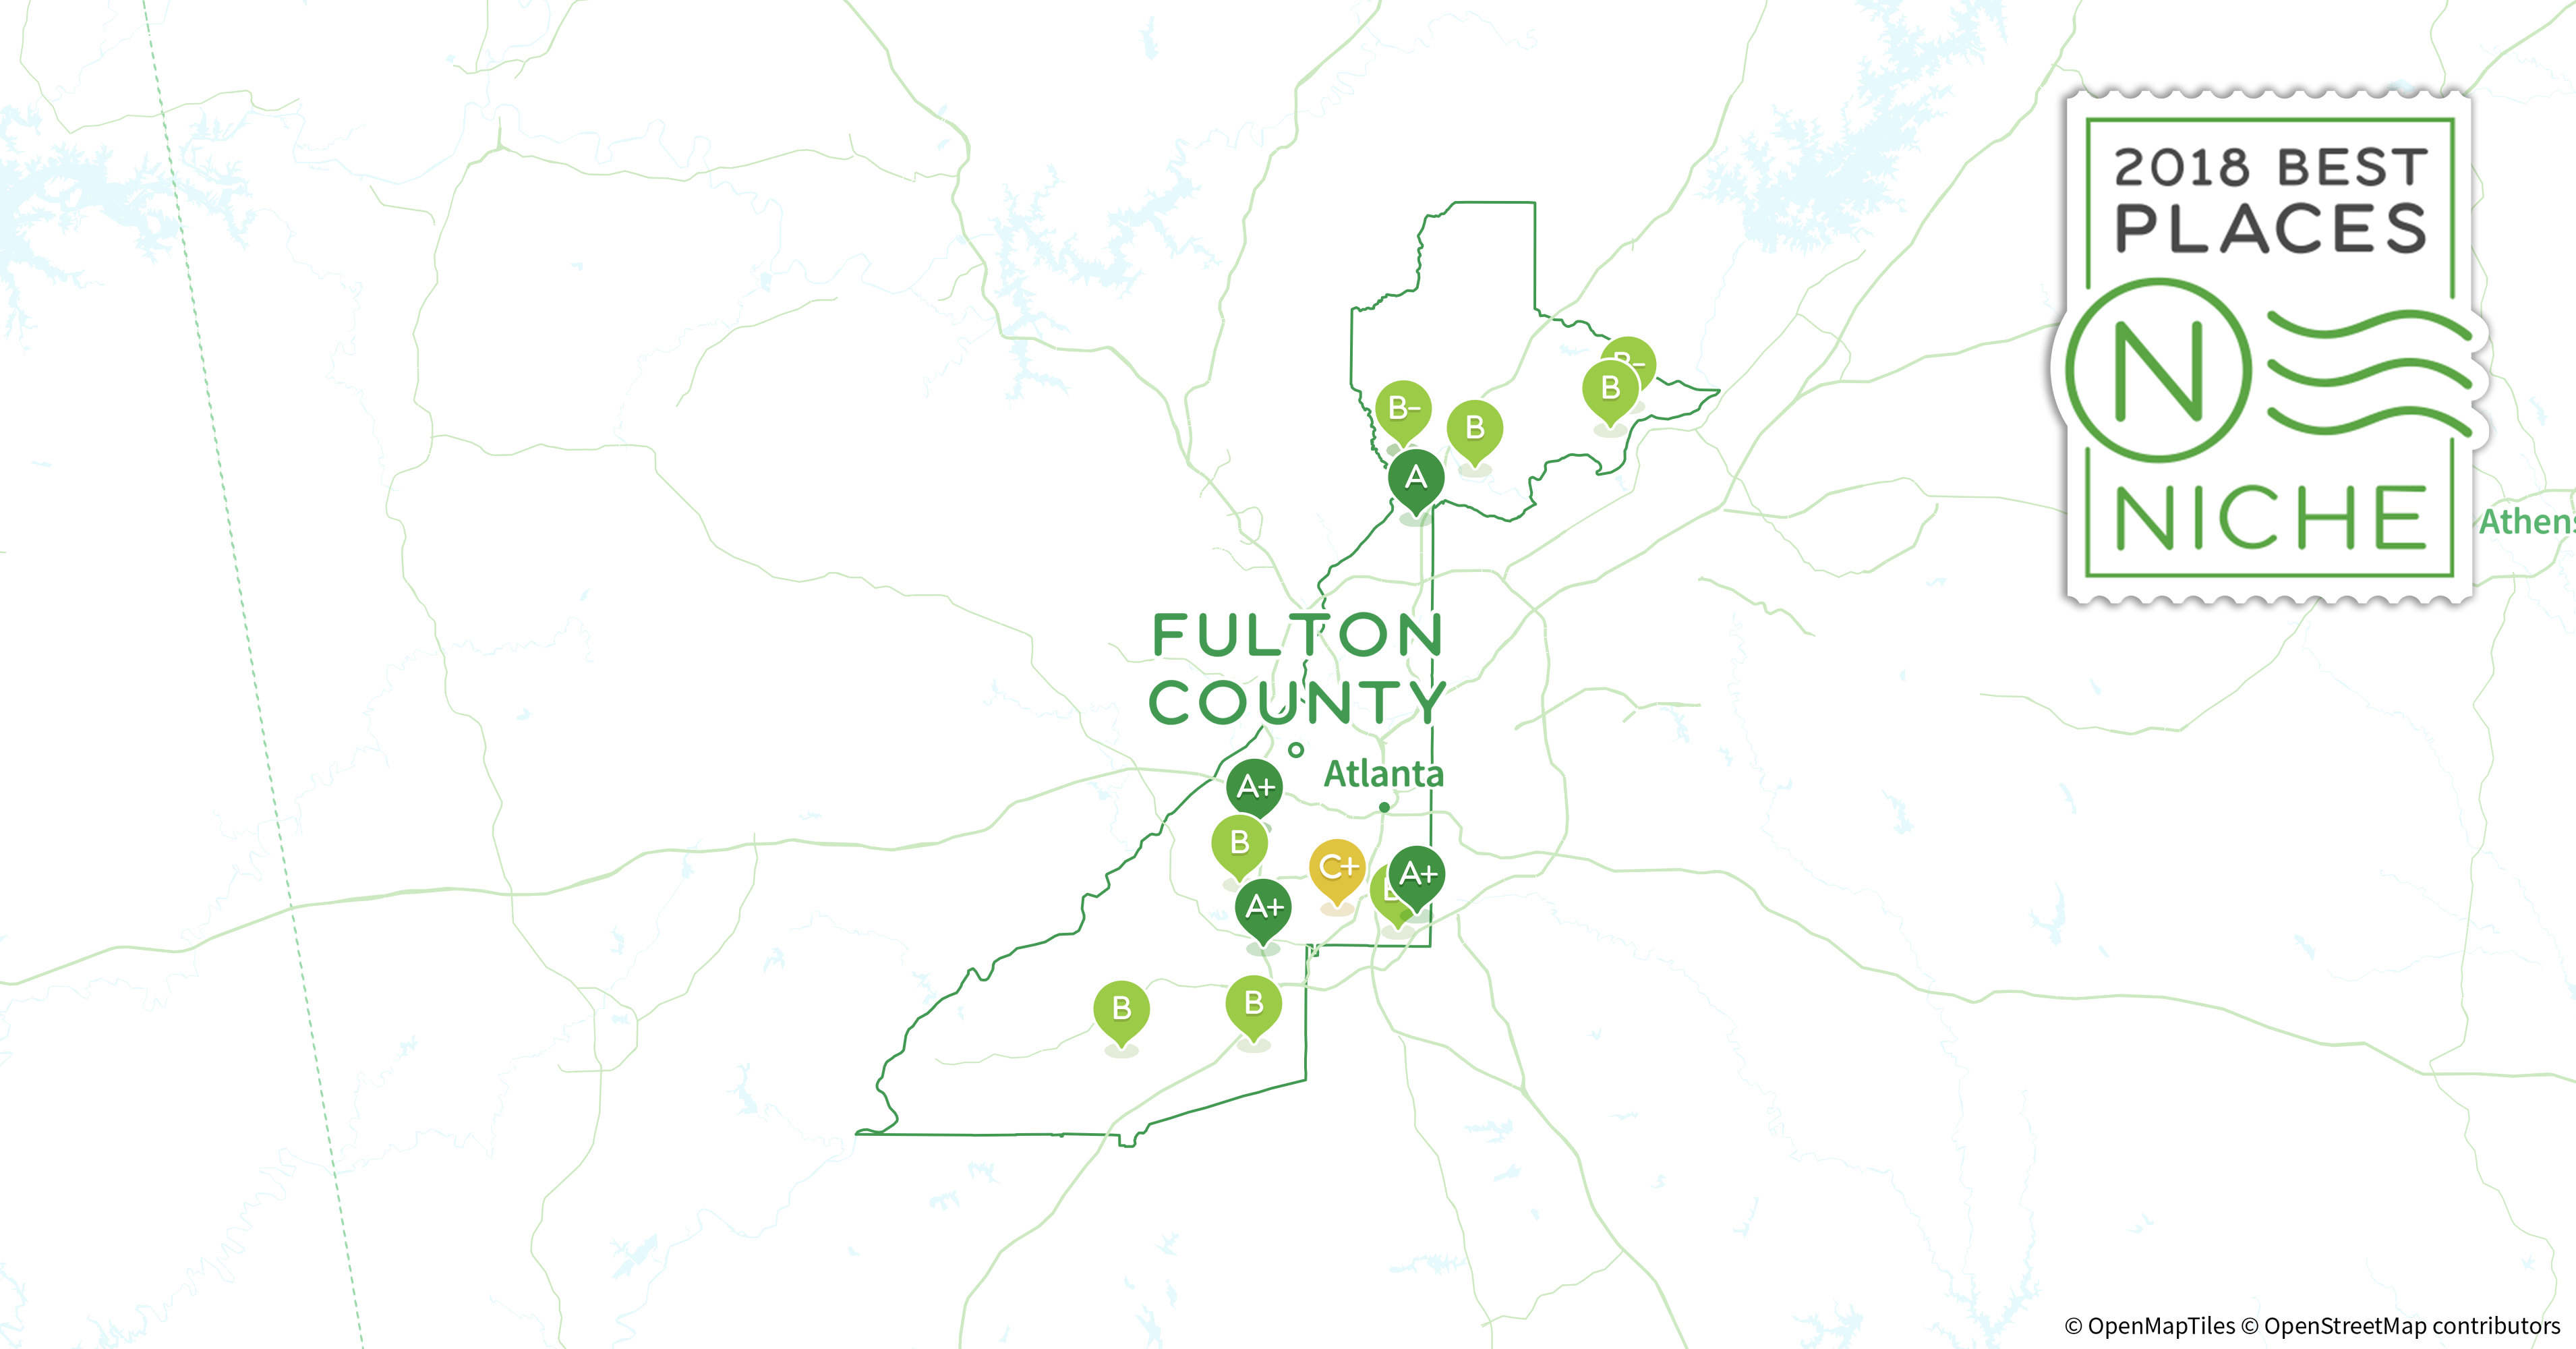 2018 Best ZIP Codes to Buy a House in Fulton County, GA - Niche